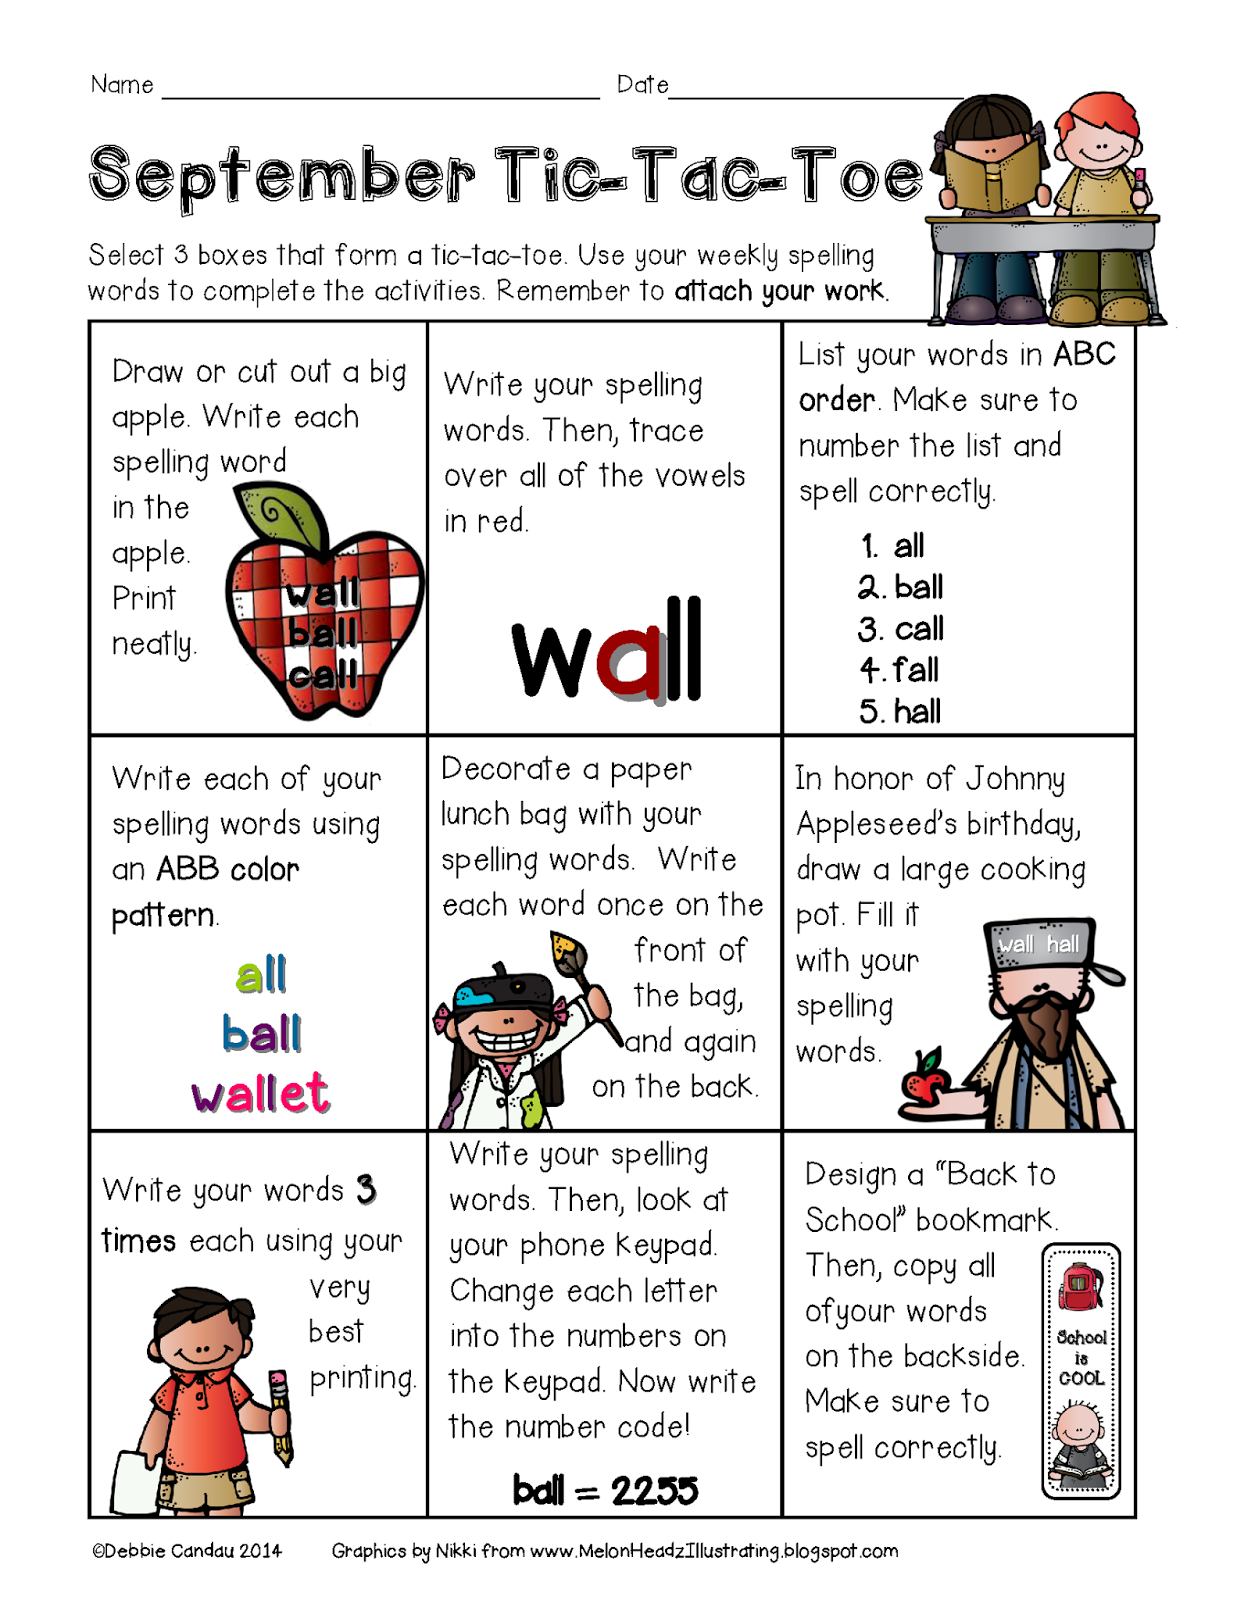 Sailing Through 1st Grade July and September Spelling TicTacToe – Tic Tac Toe Math Worksheets